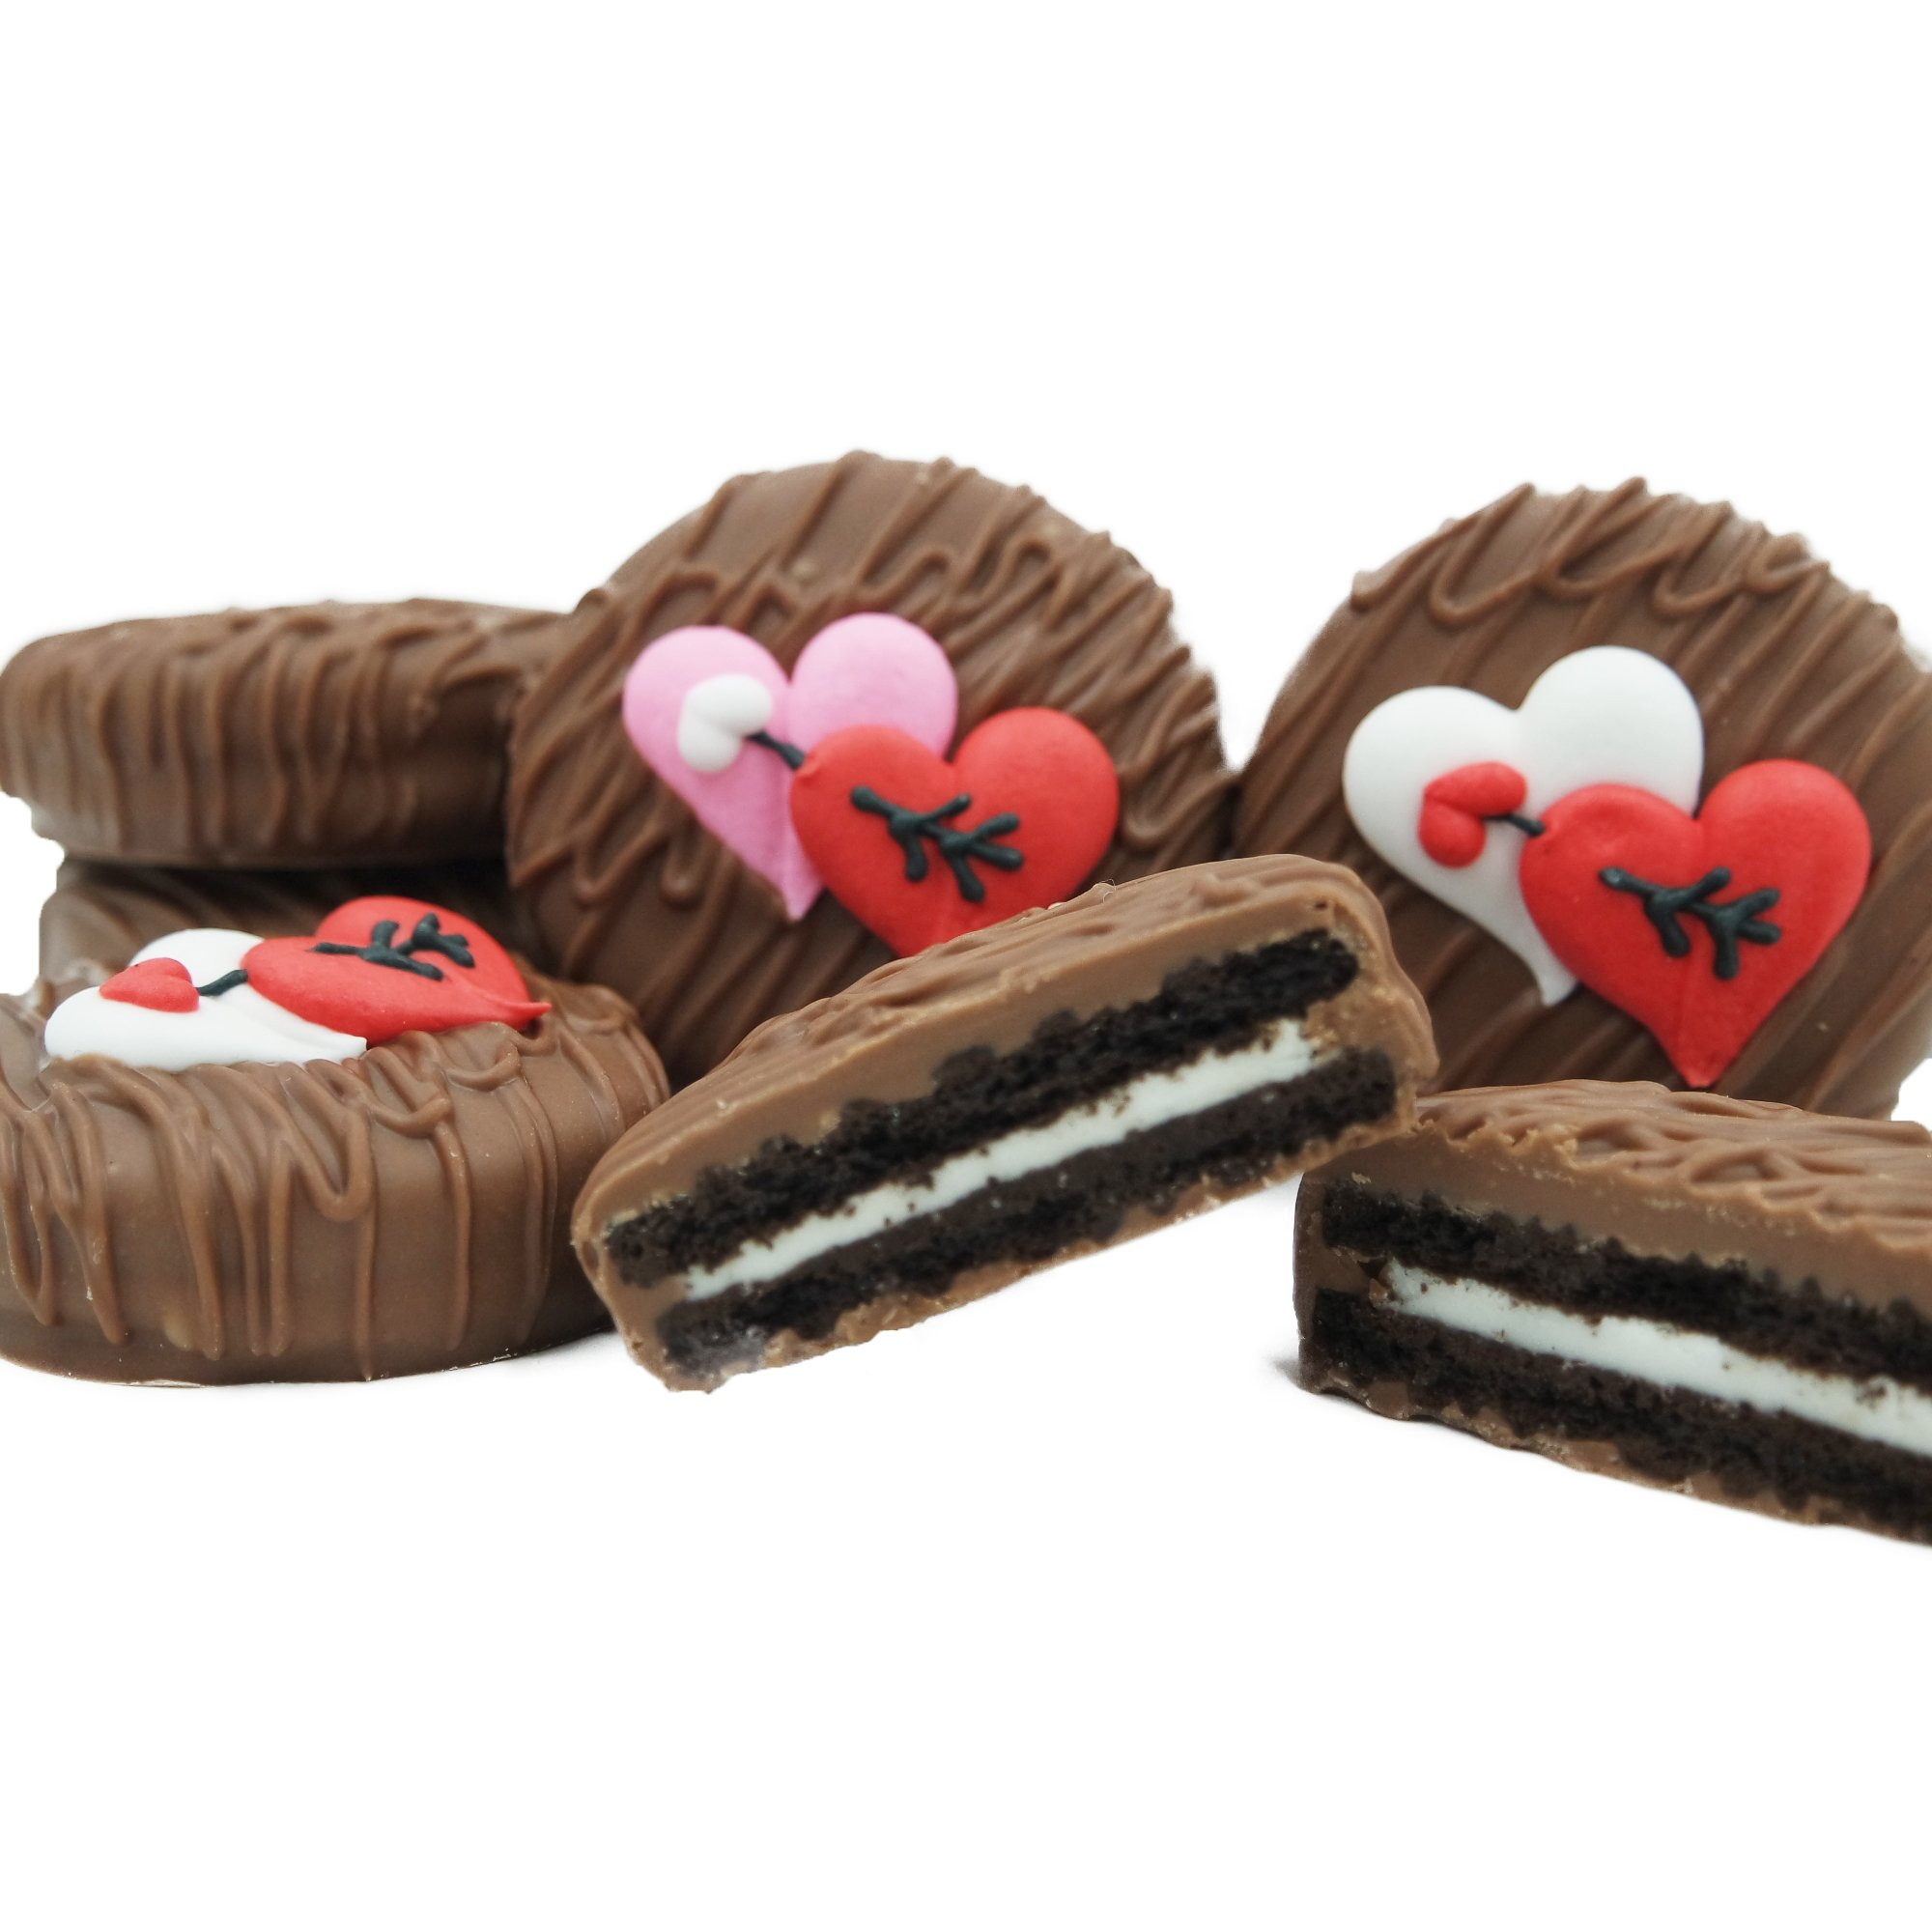 Philadelphia Candies Milk Chocolate Covered OREO® Cookies, Valentine's Day Gift 8 Ounce